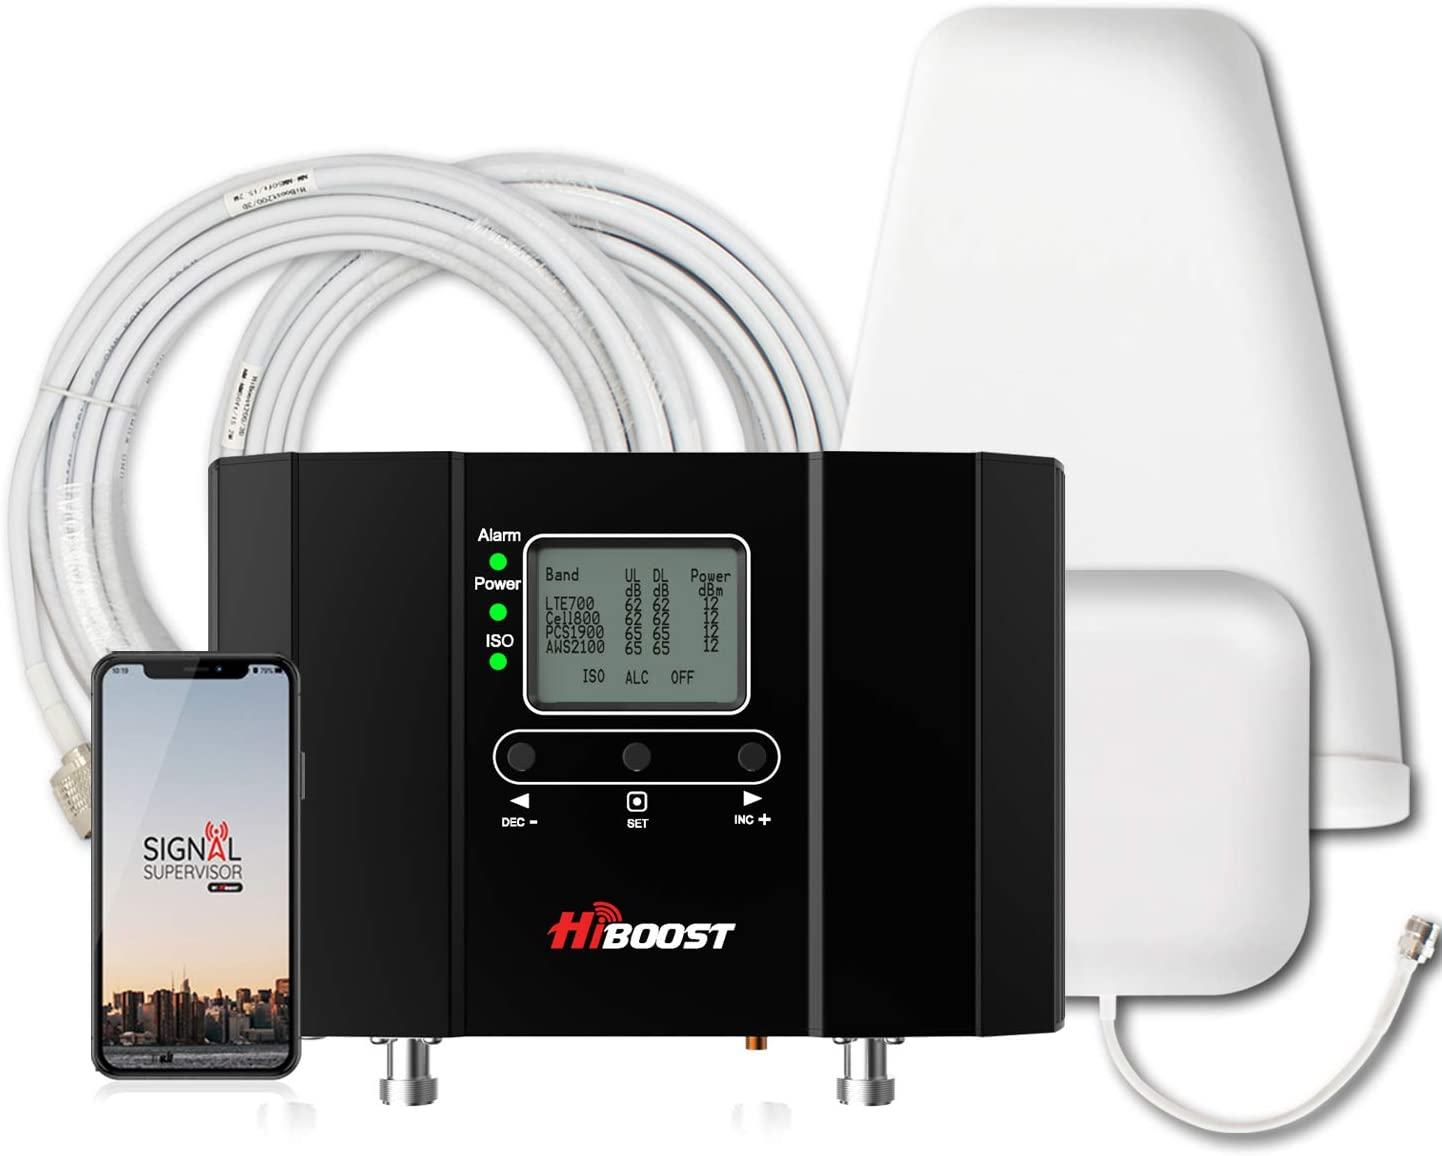 HiBoost Cell Phone Signal Booster Signal Extender Cellular Booster Signal Amplifier for Home Office, Supports up to 10,000 SQ. FT,Compatible AT&T, T-Mobile, Verizon, Sprint -10K Smart Link